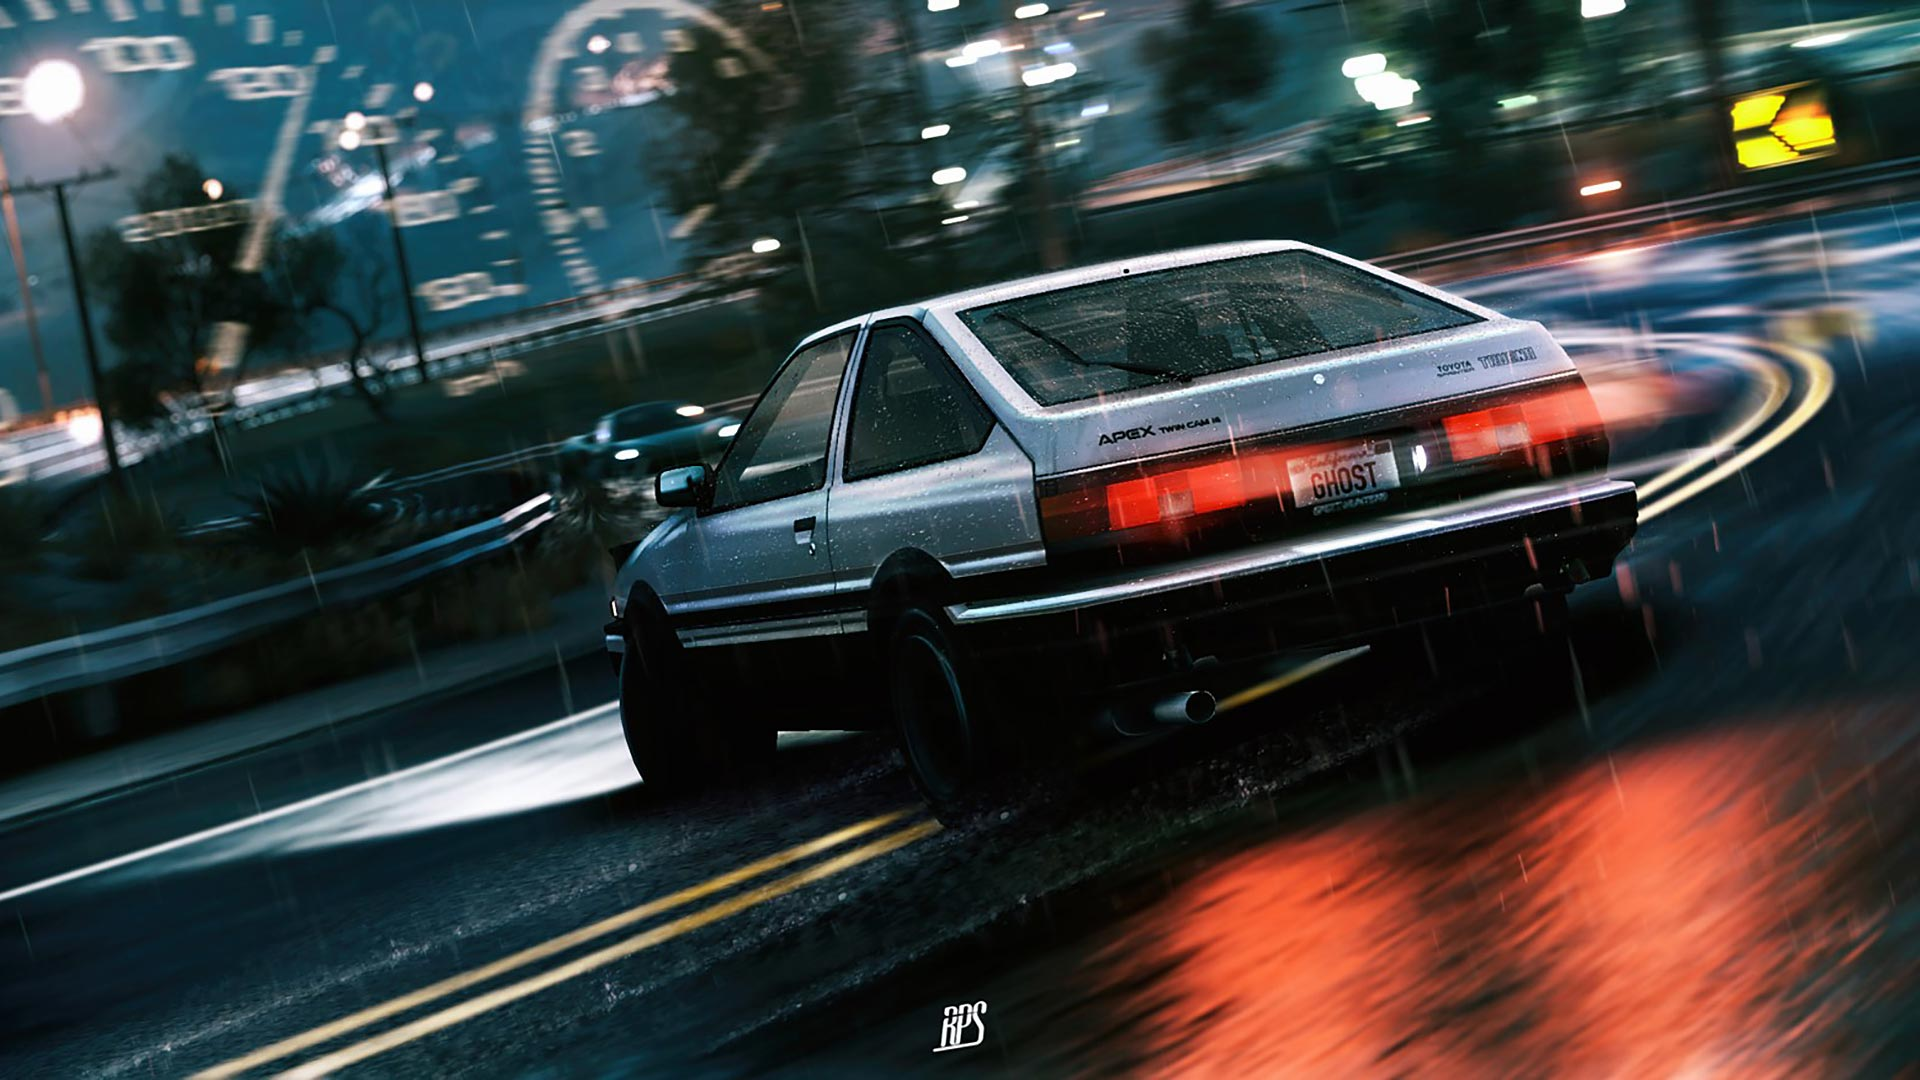 Initial D Theme for Windows 10 8 7 1920x1080